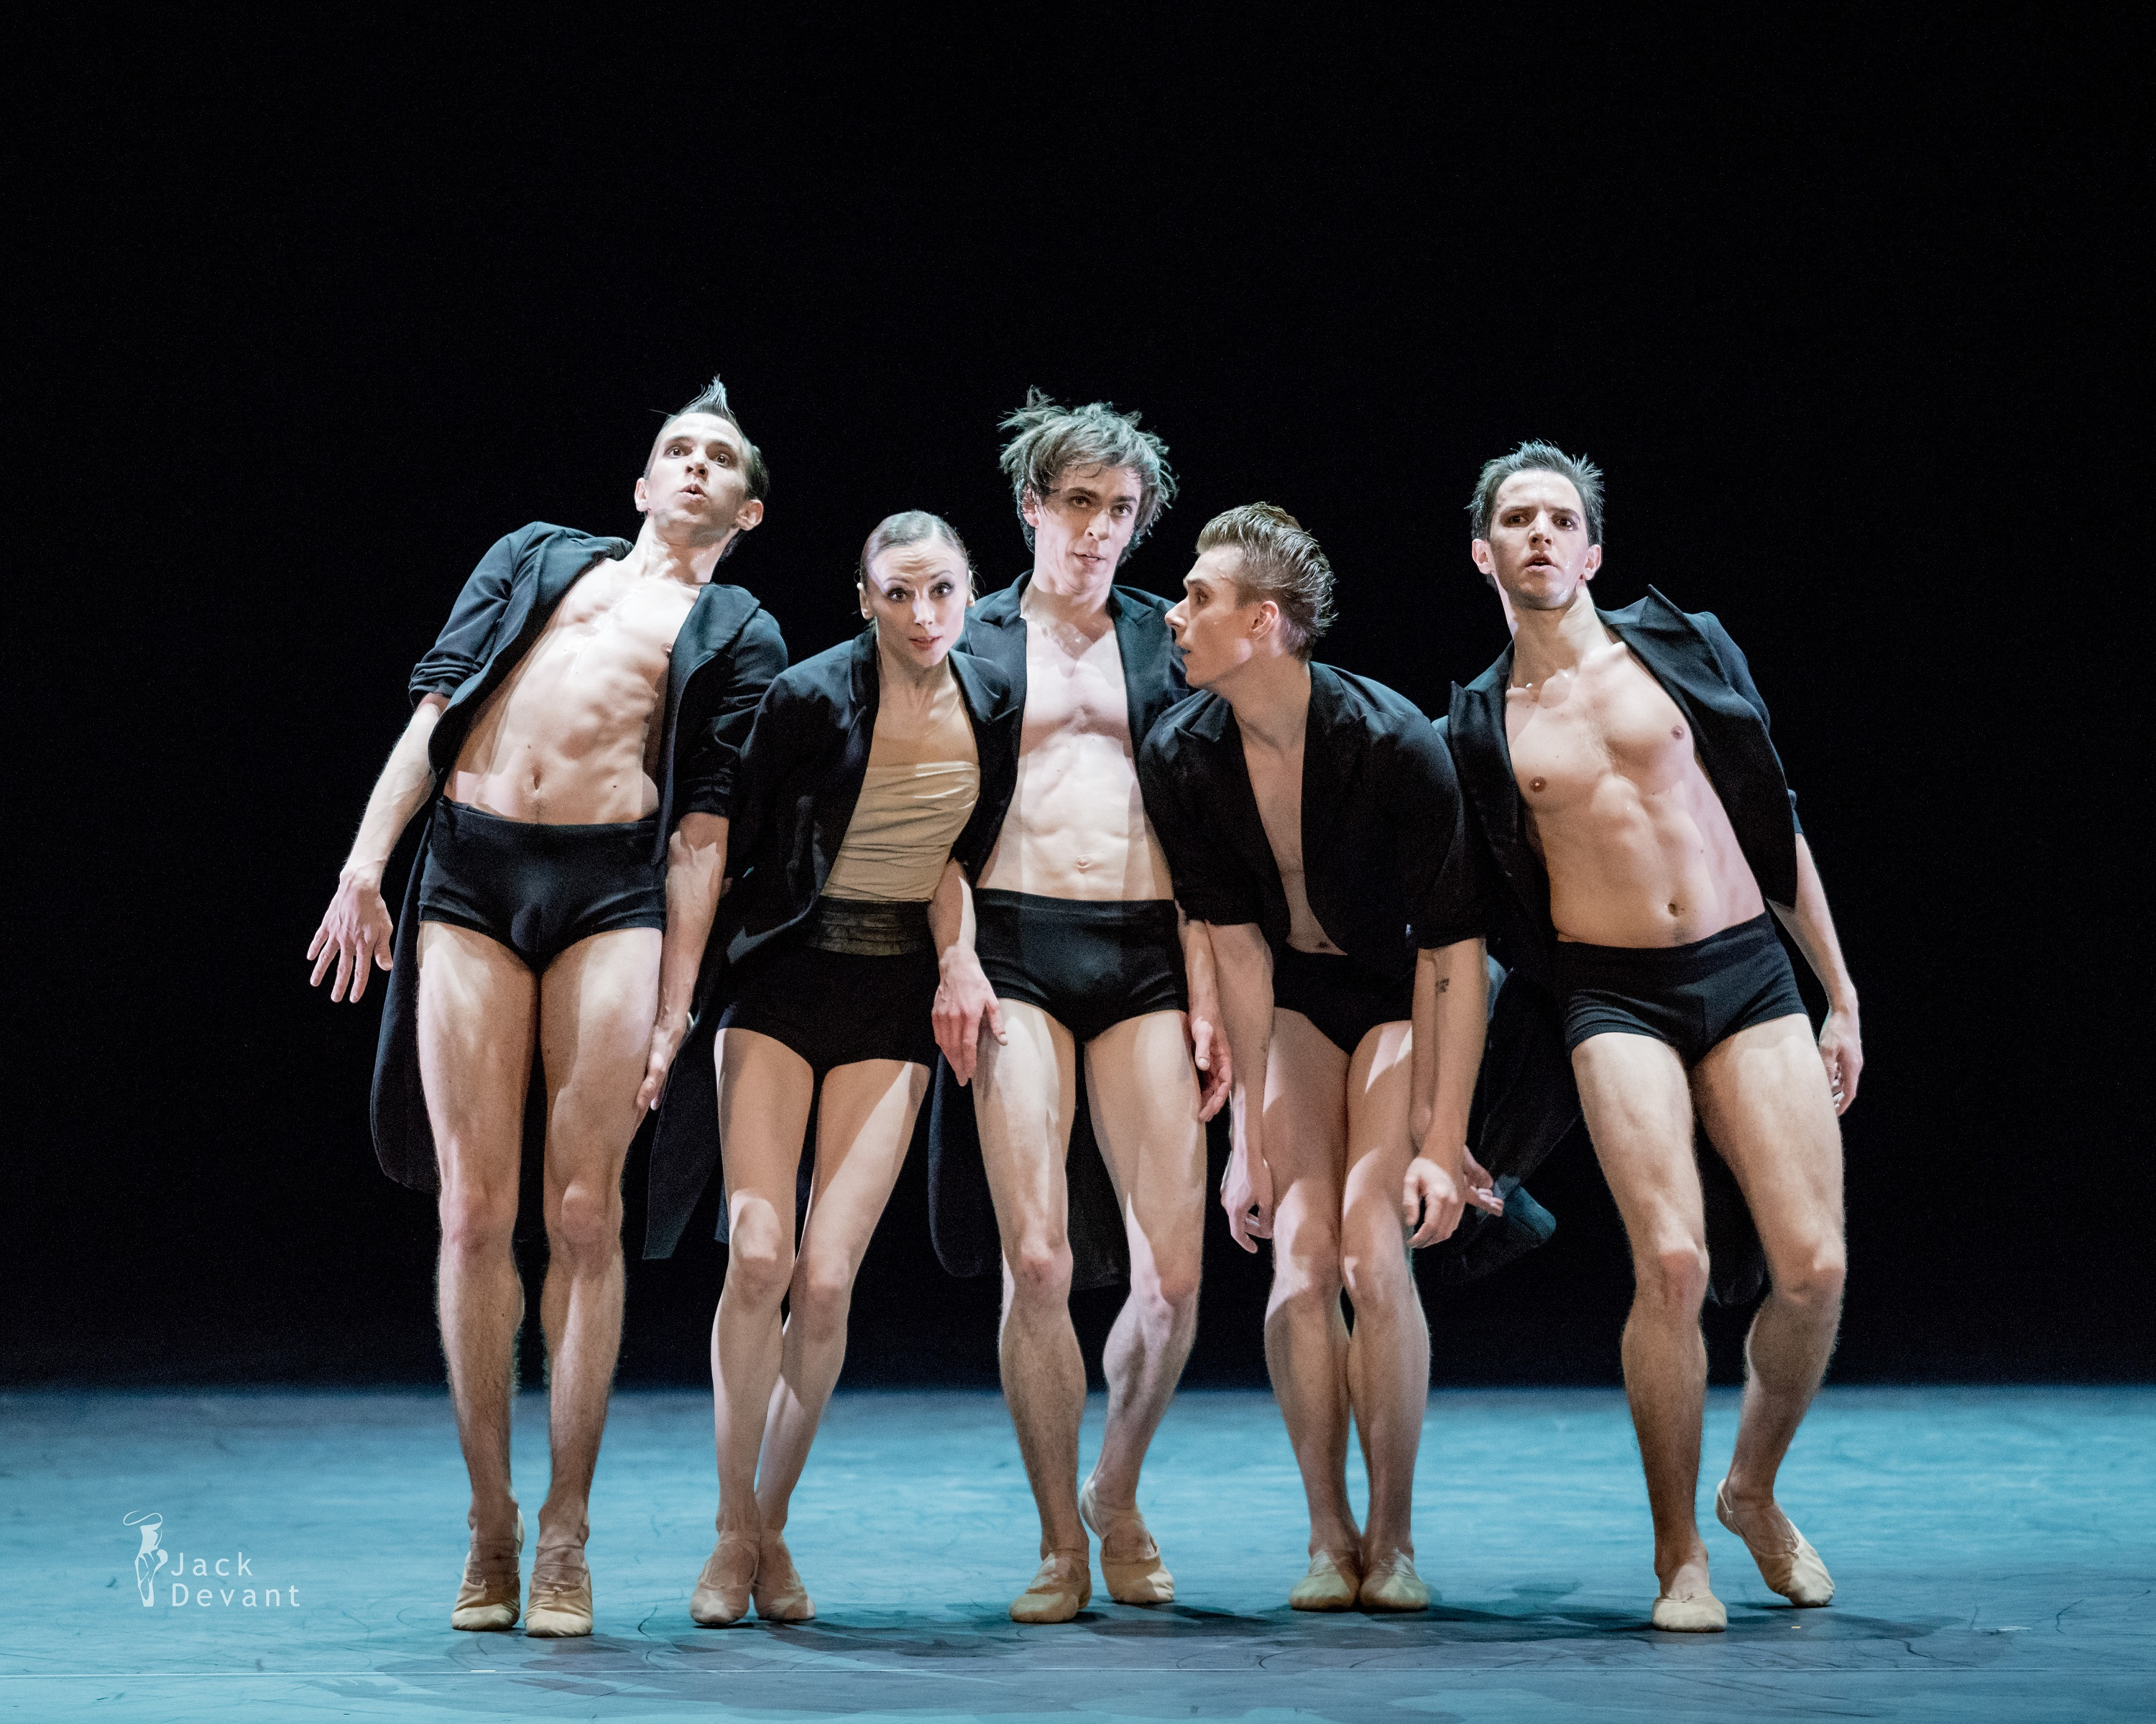 AMORE featuring Svetlana Zakharova (second from left) in Strokes of the Tail photo by Jack Devant